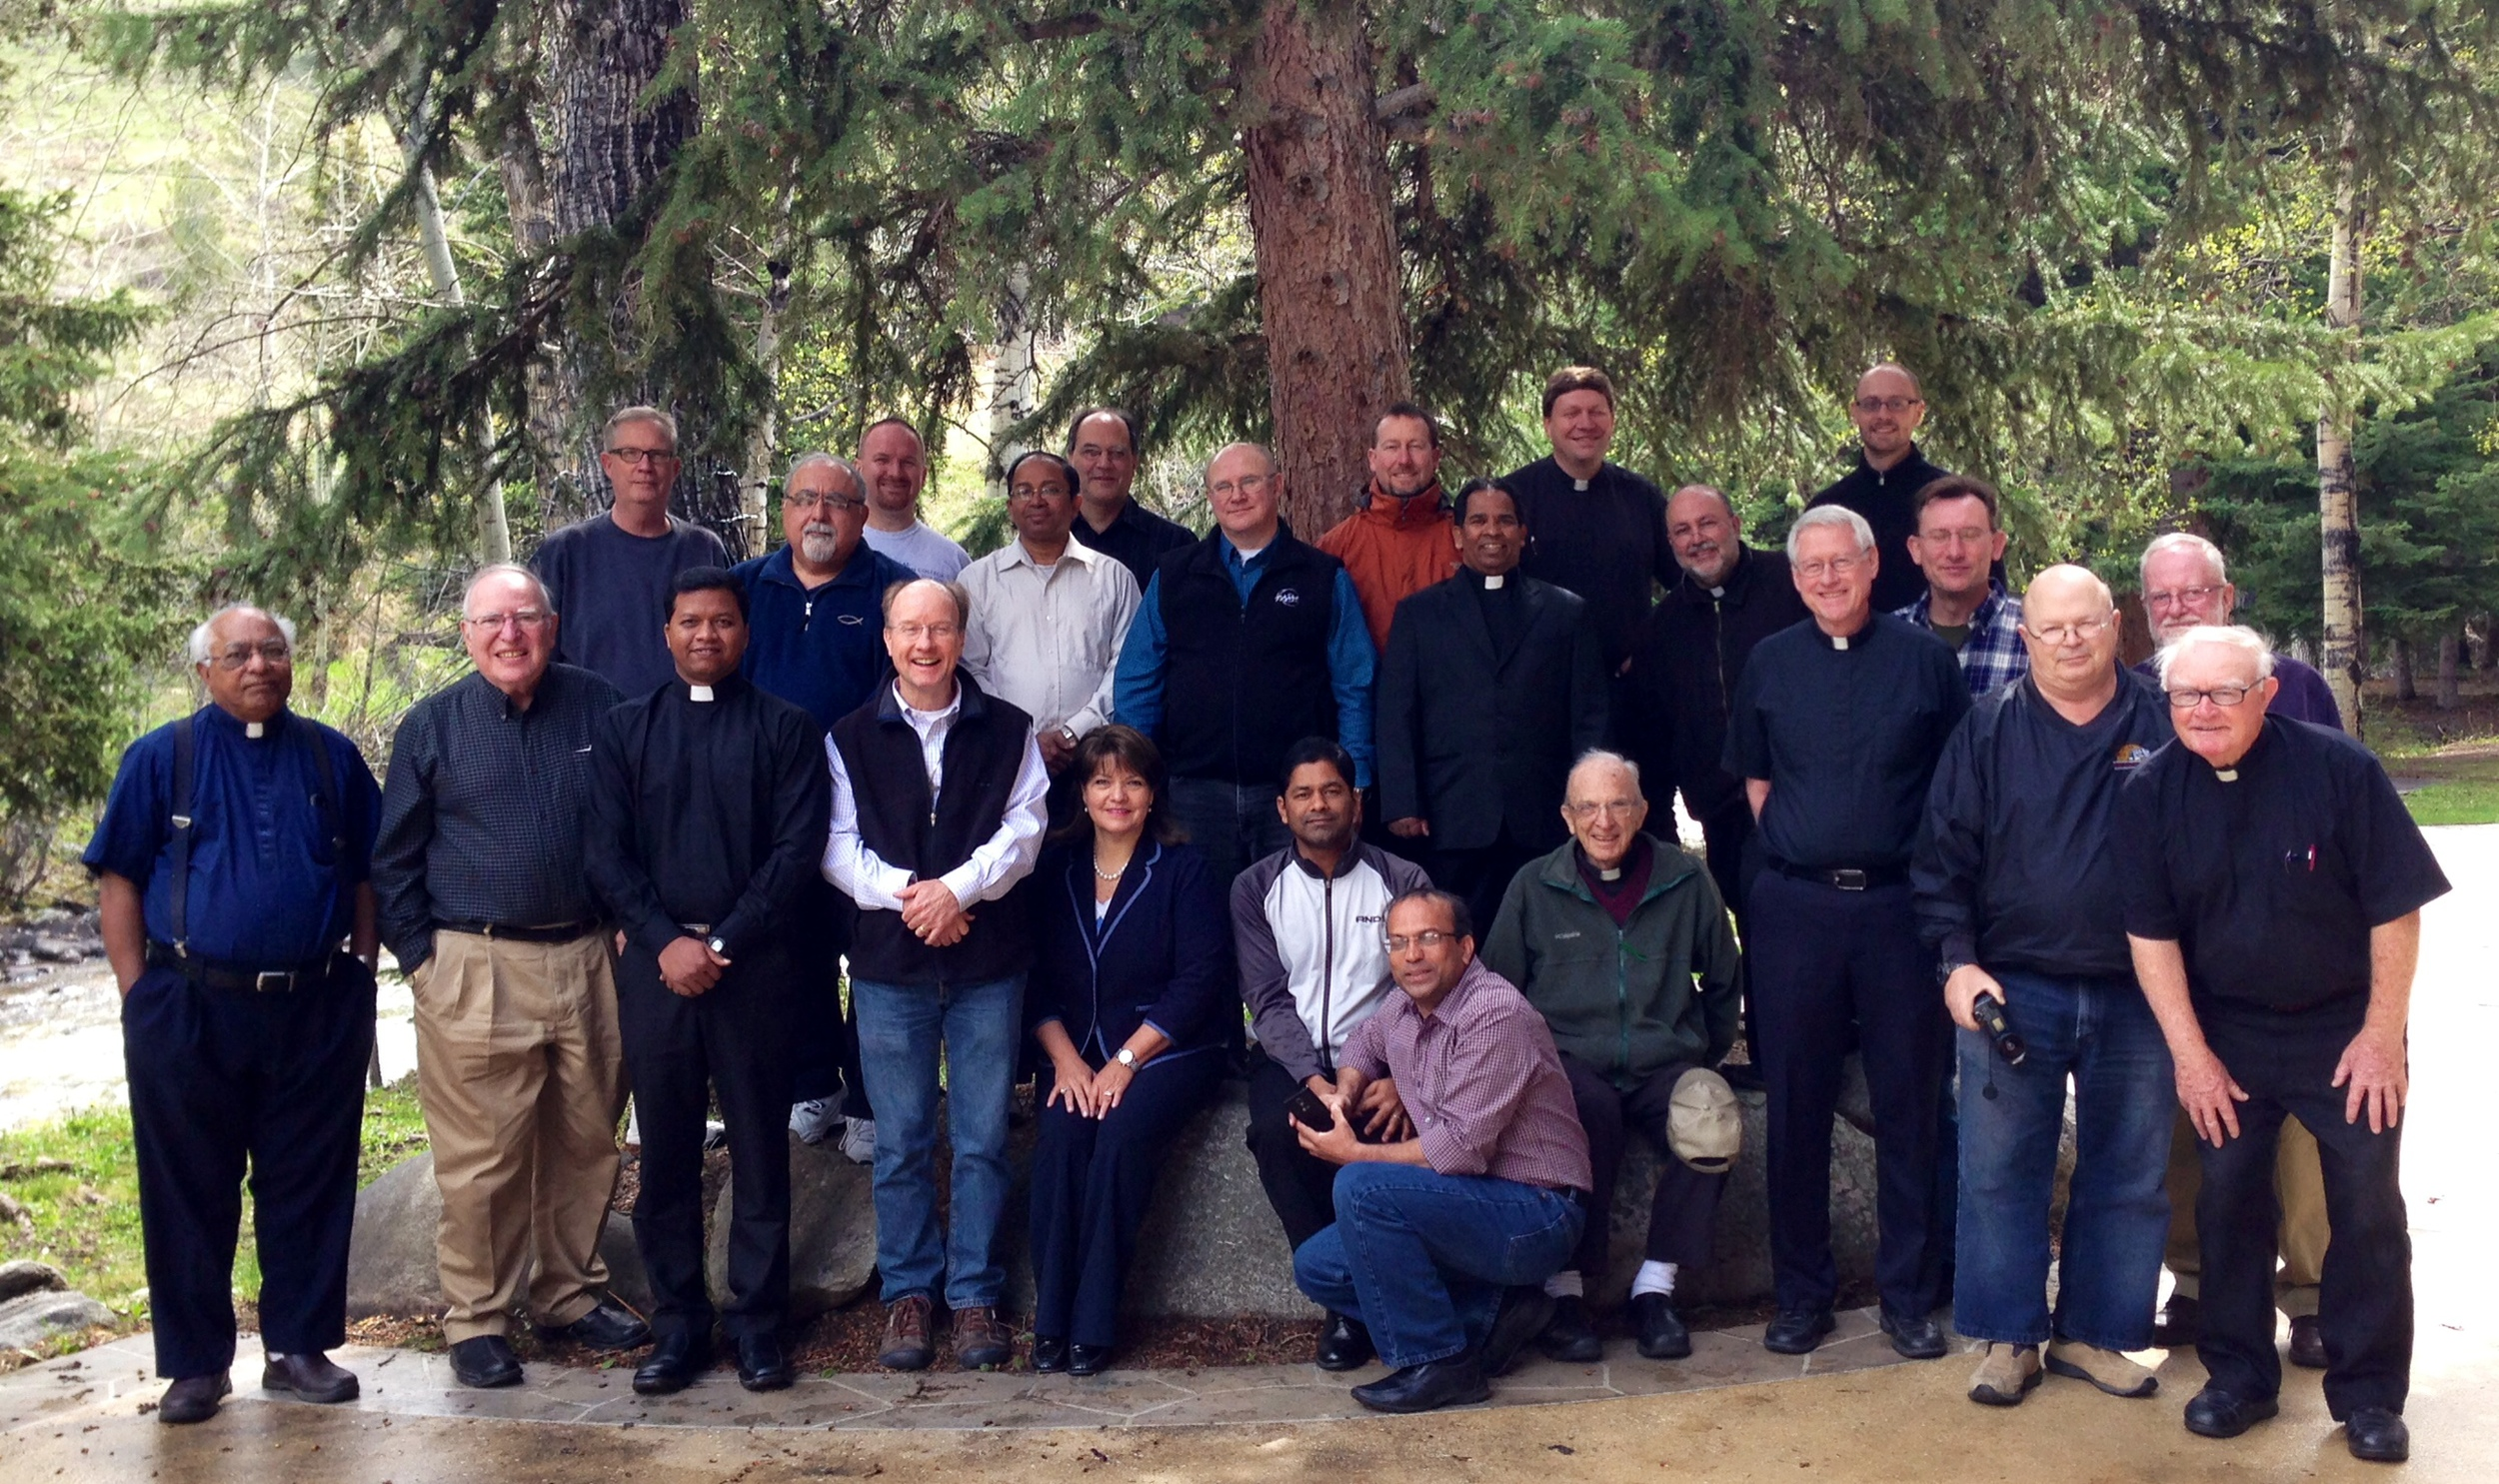 Kathleen led the 2015 Priest Retreat for the Bishop and Priests of the Diocese of Billings & Great Falls, Montana